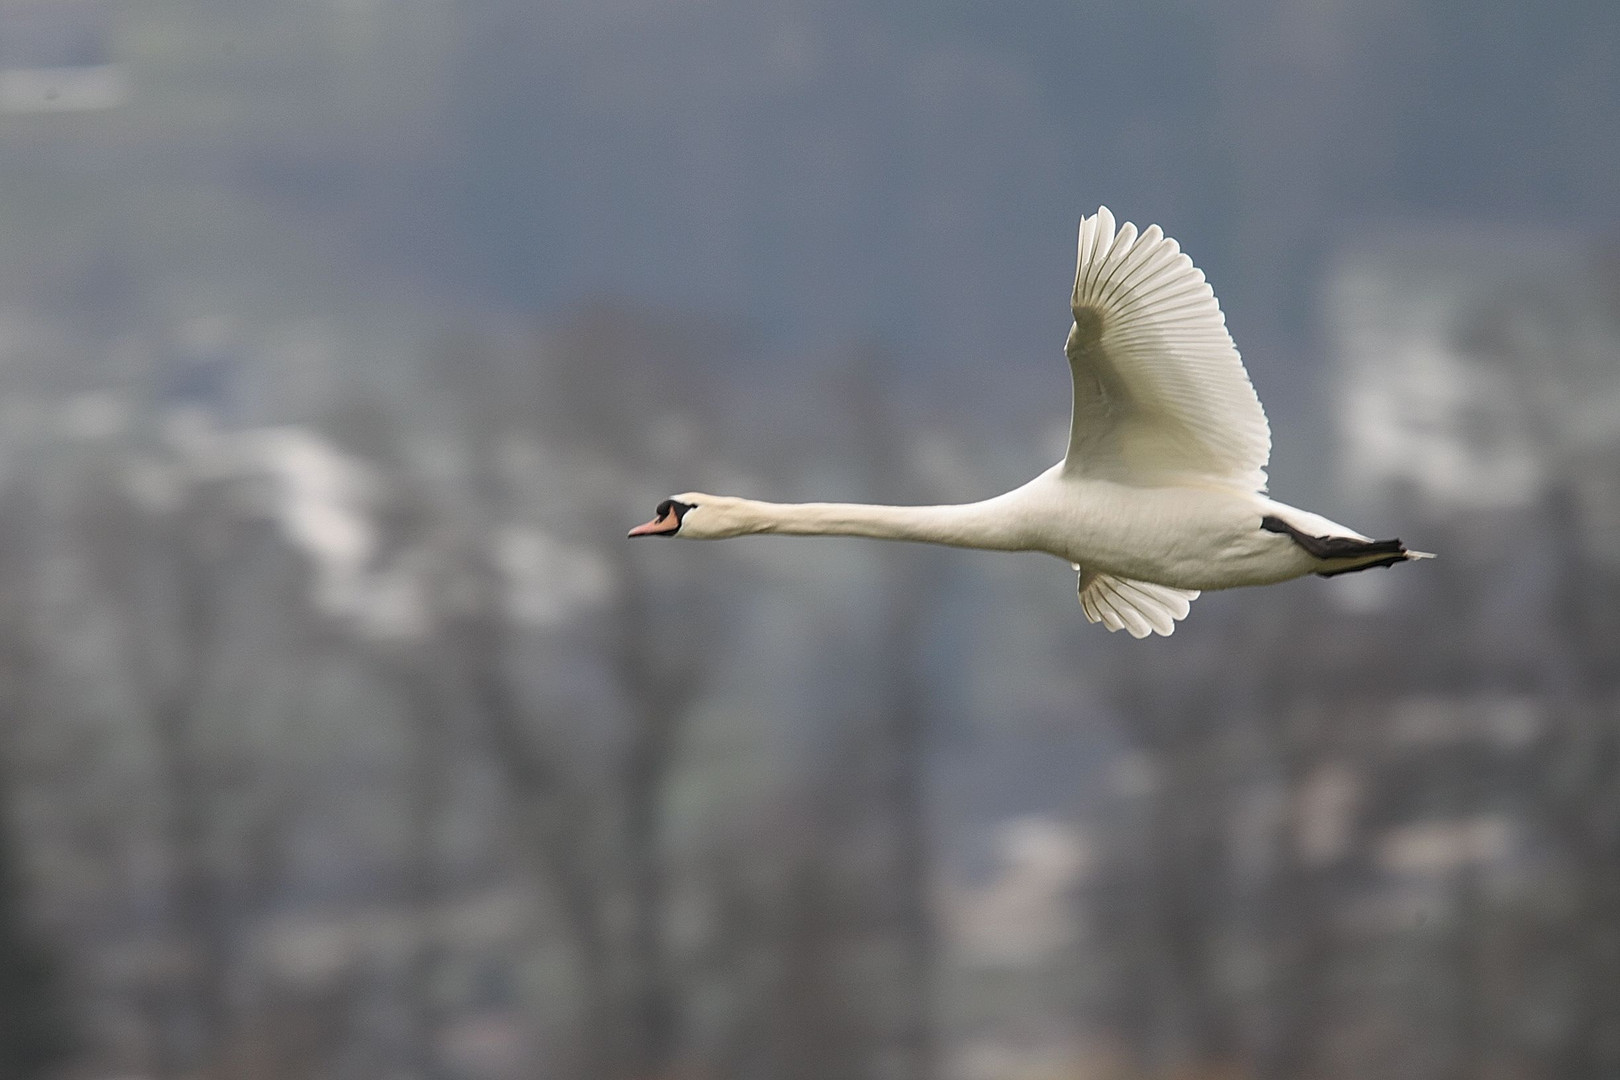 The flying swan